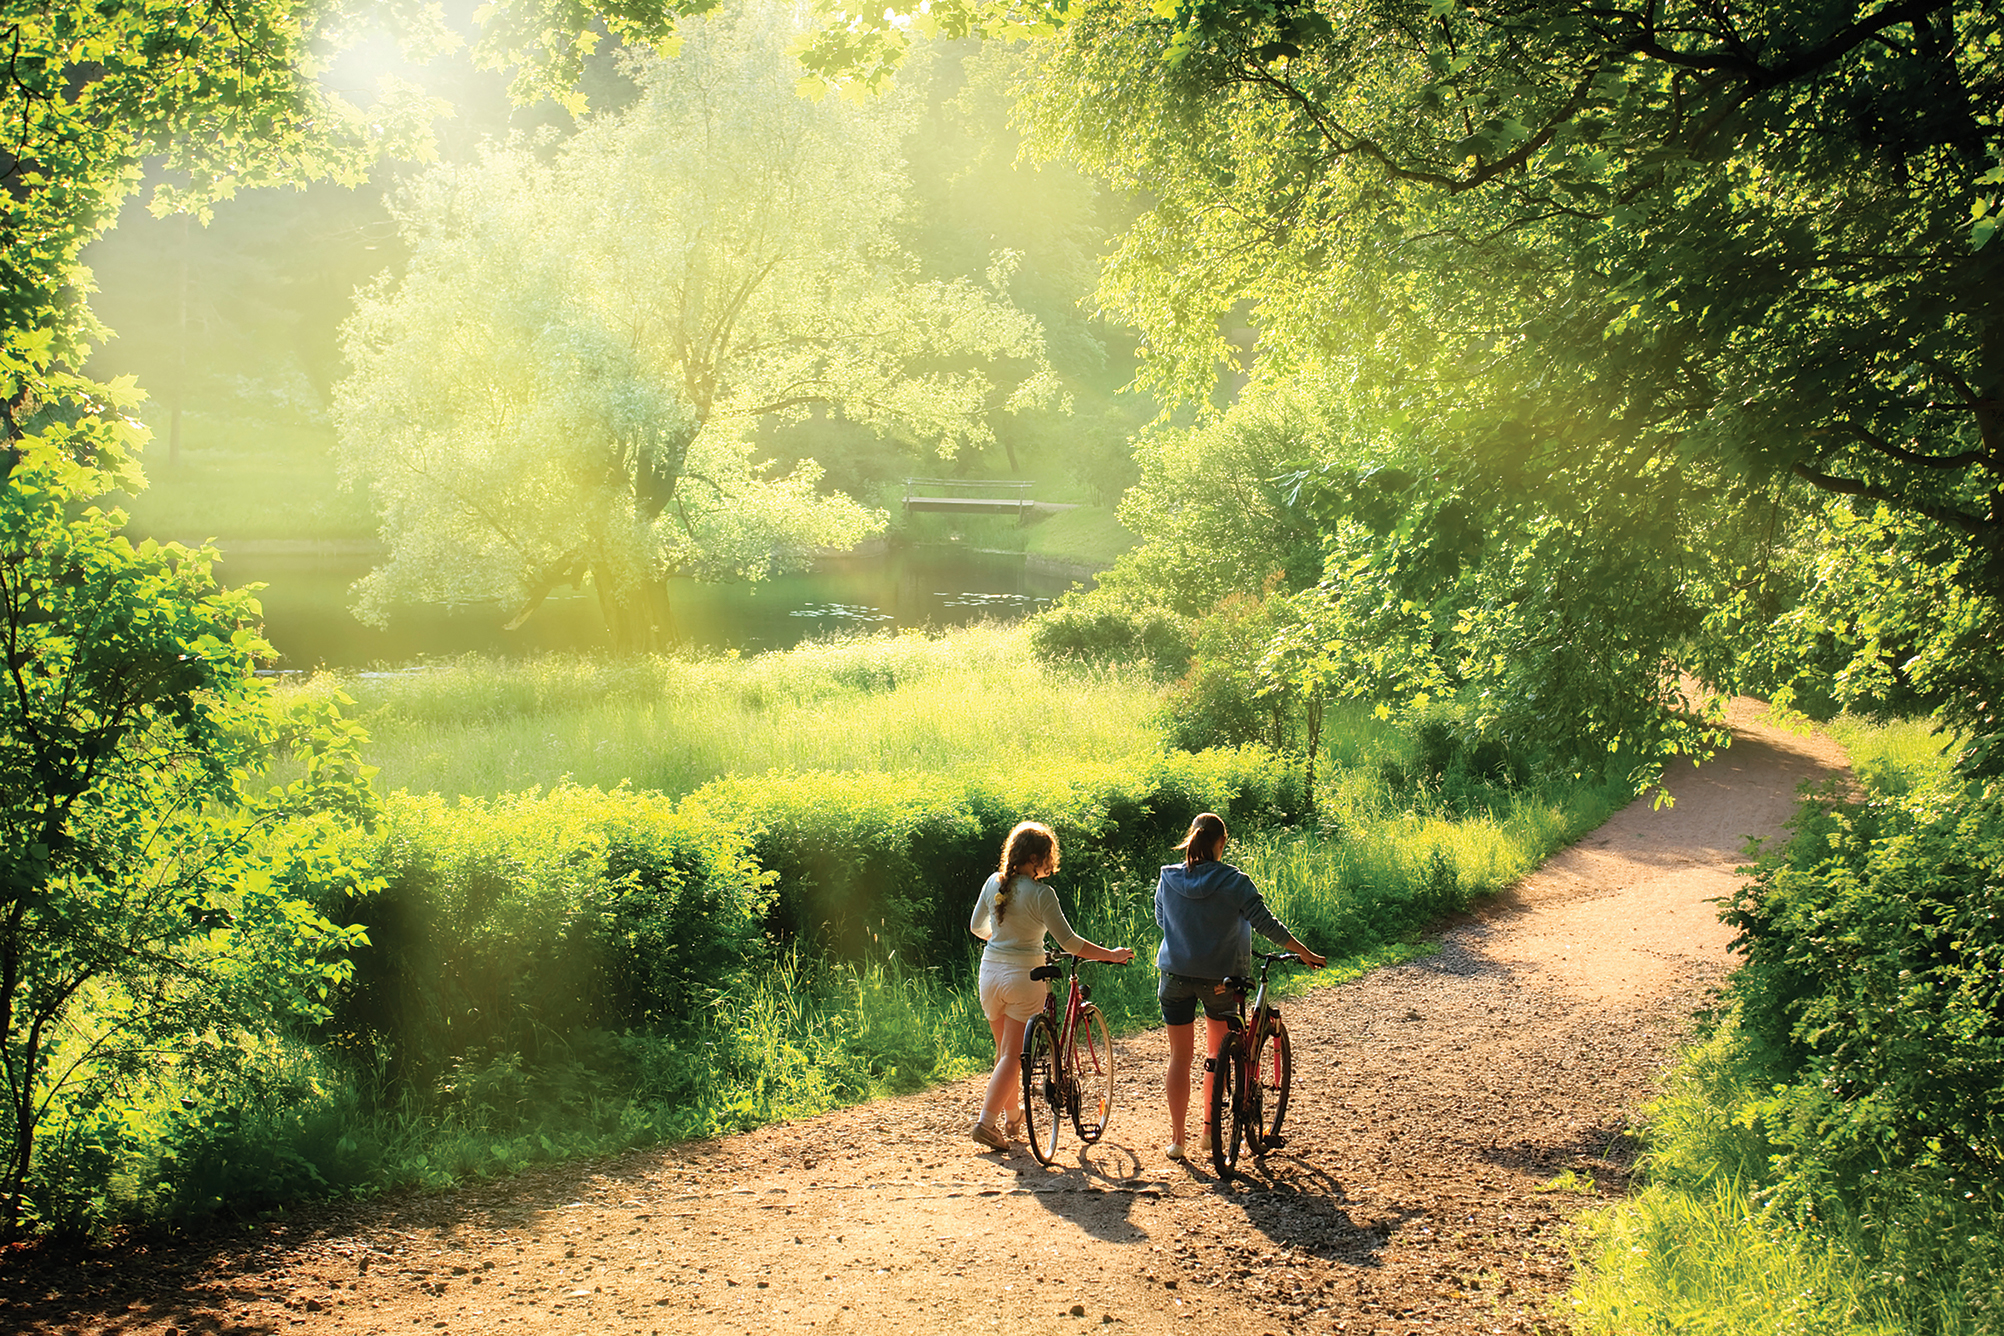 Taking a break from cycling, two children reconnect with nature as they walk along the trail. Photo courtesy Eastern Ontario Trails Alliance.